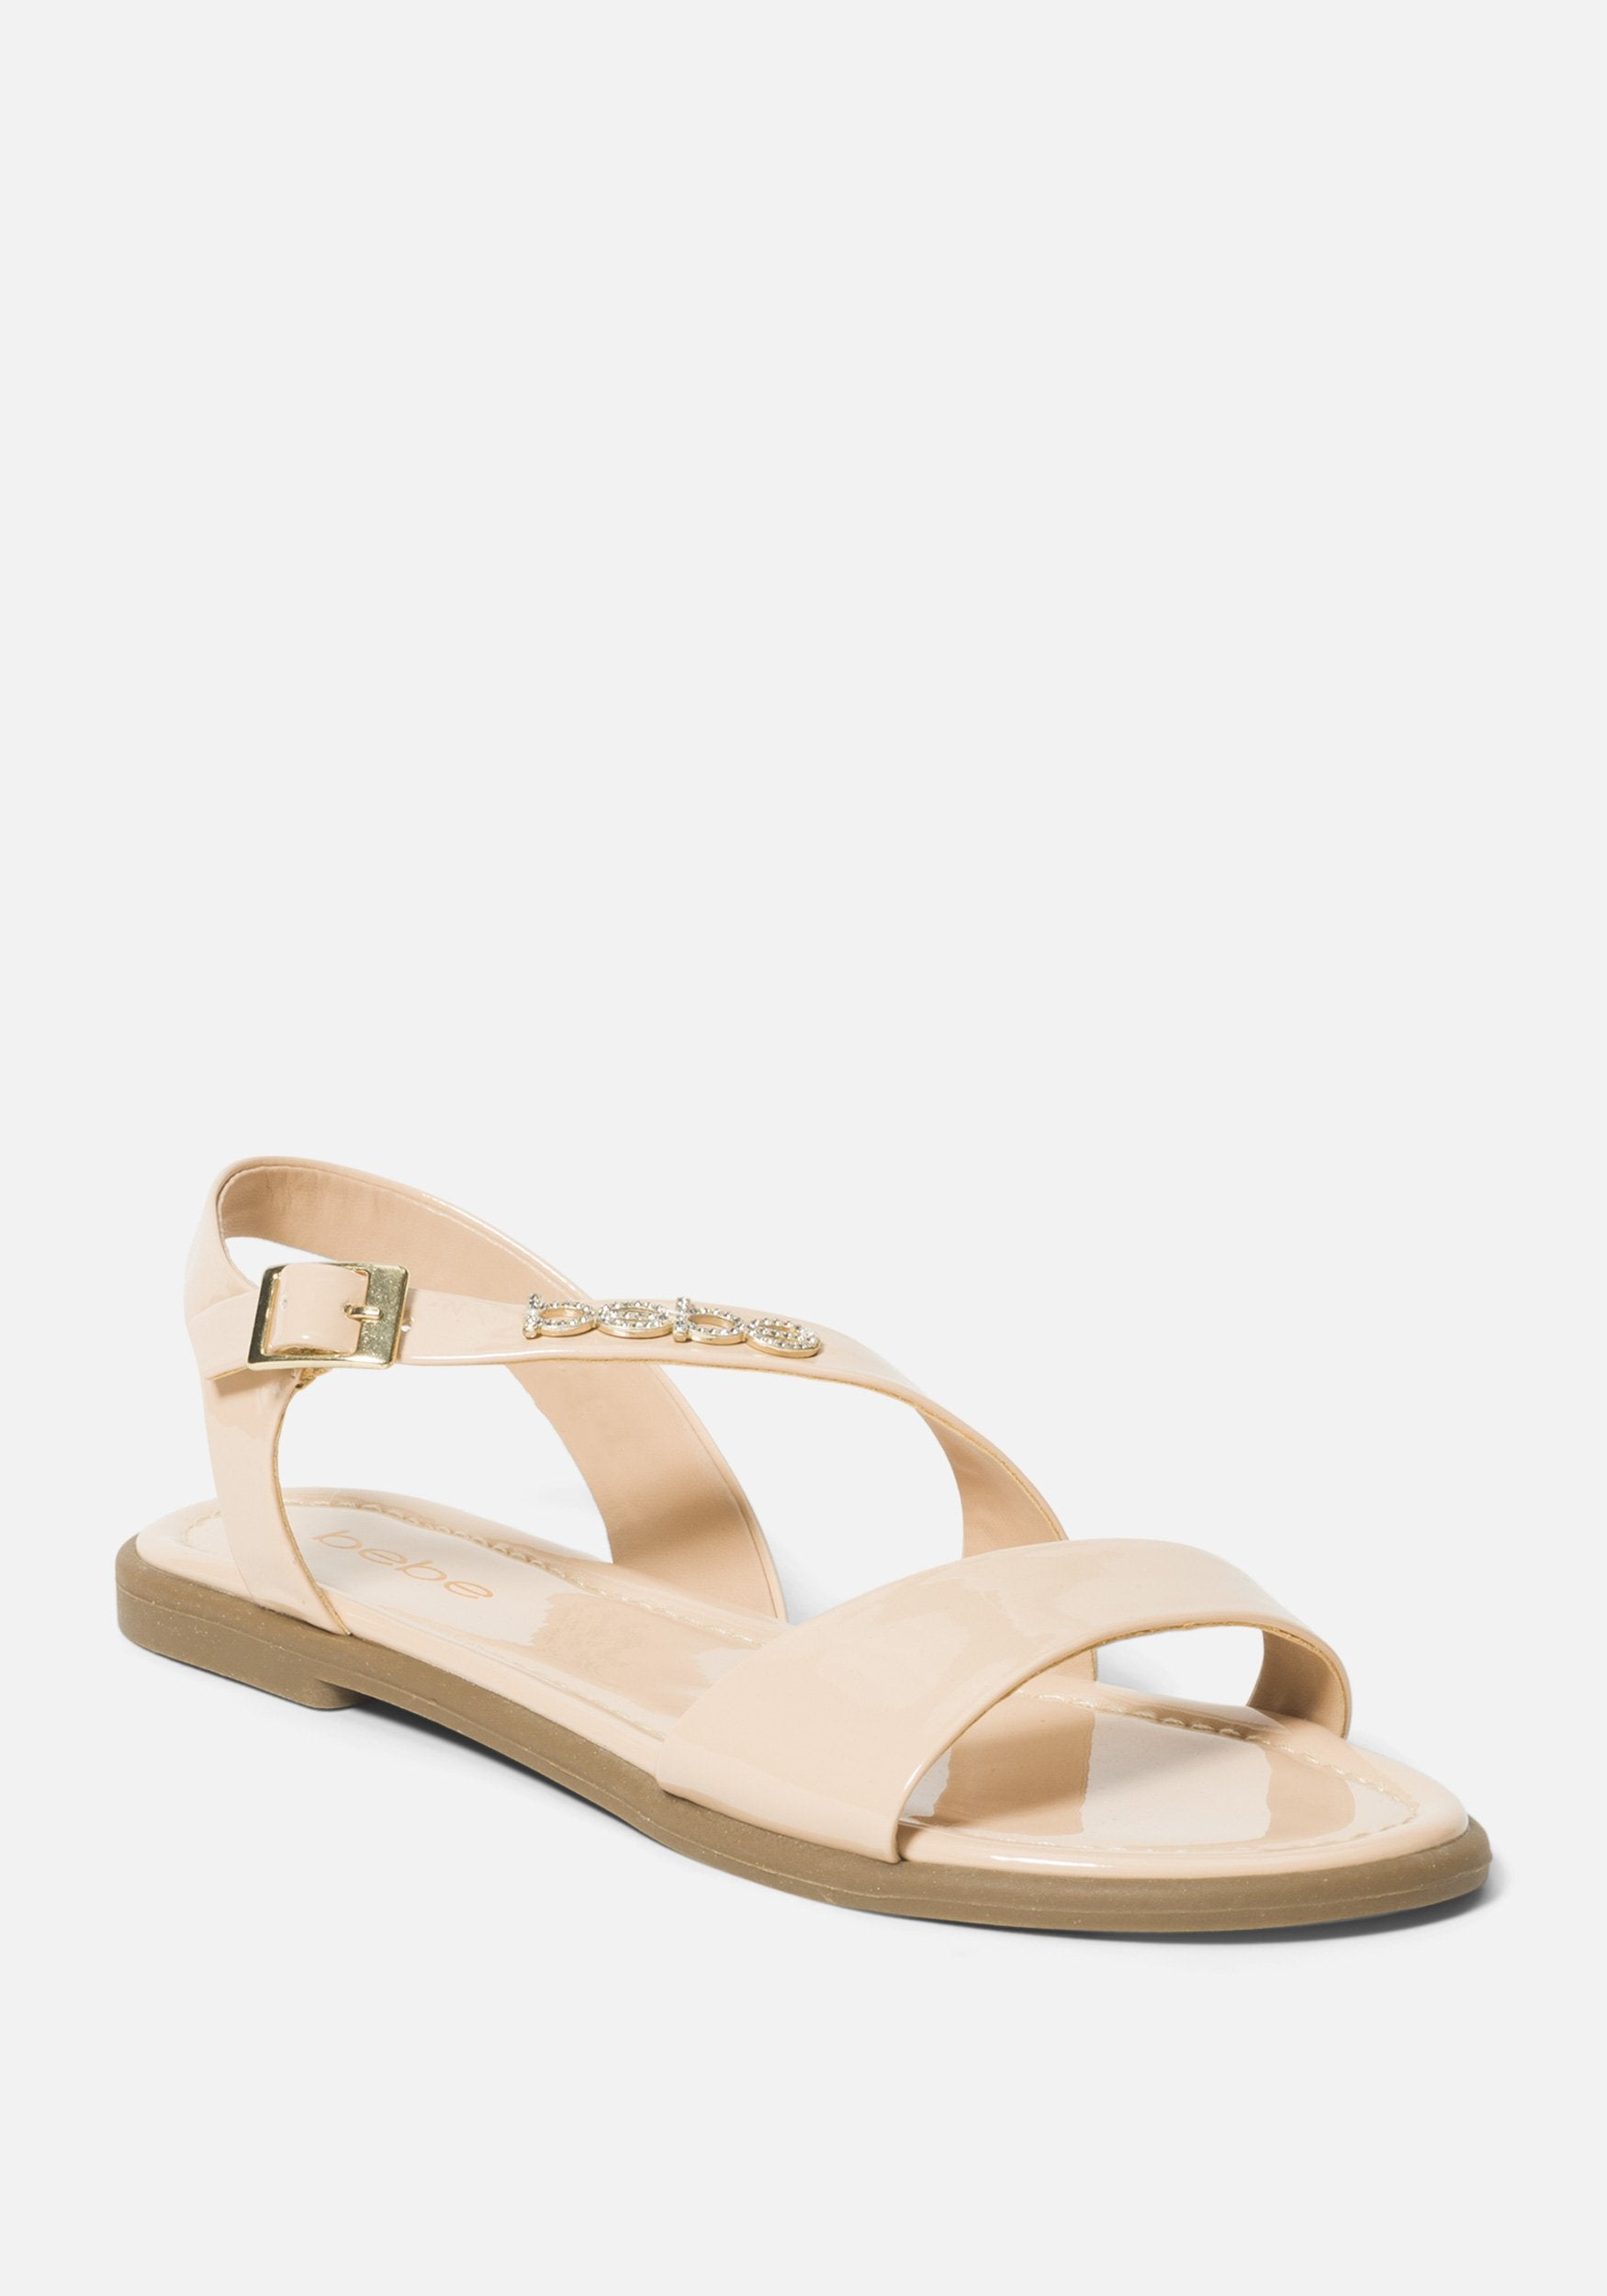 Bebe Women's Leyra Flat Sandal, Size 6 in NUDE Synthetic